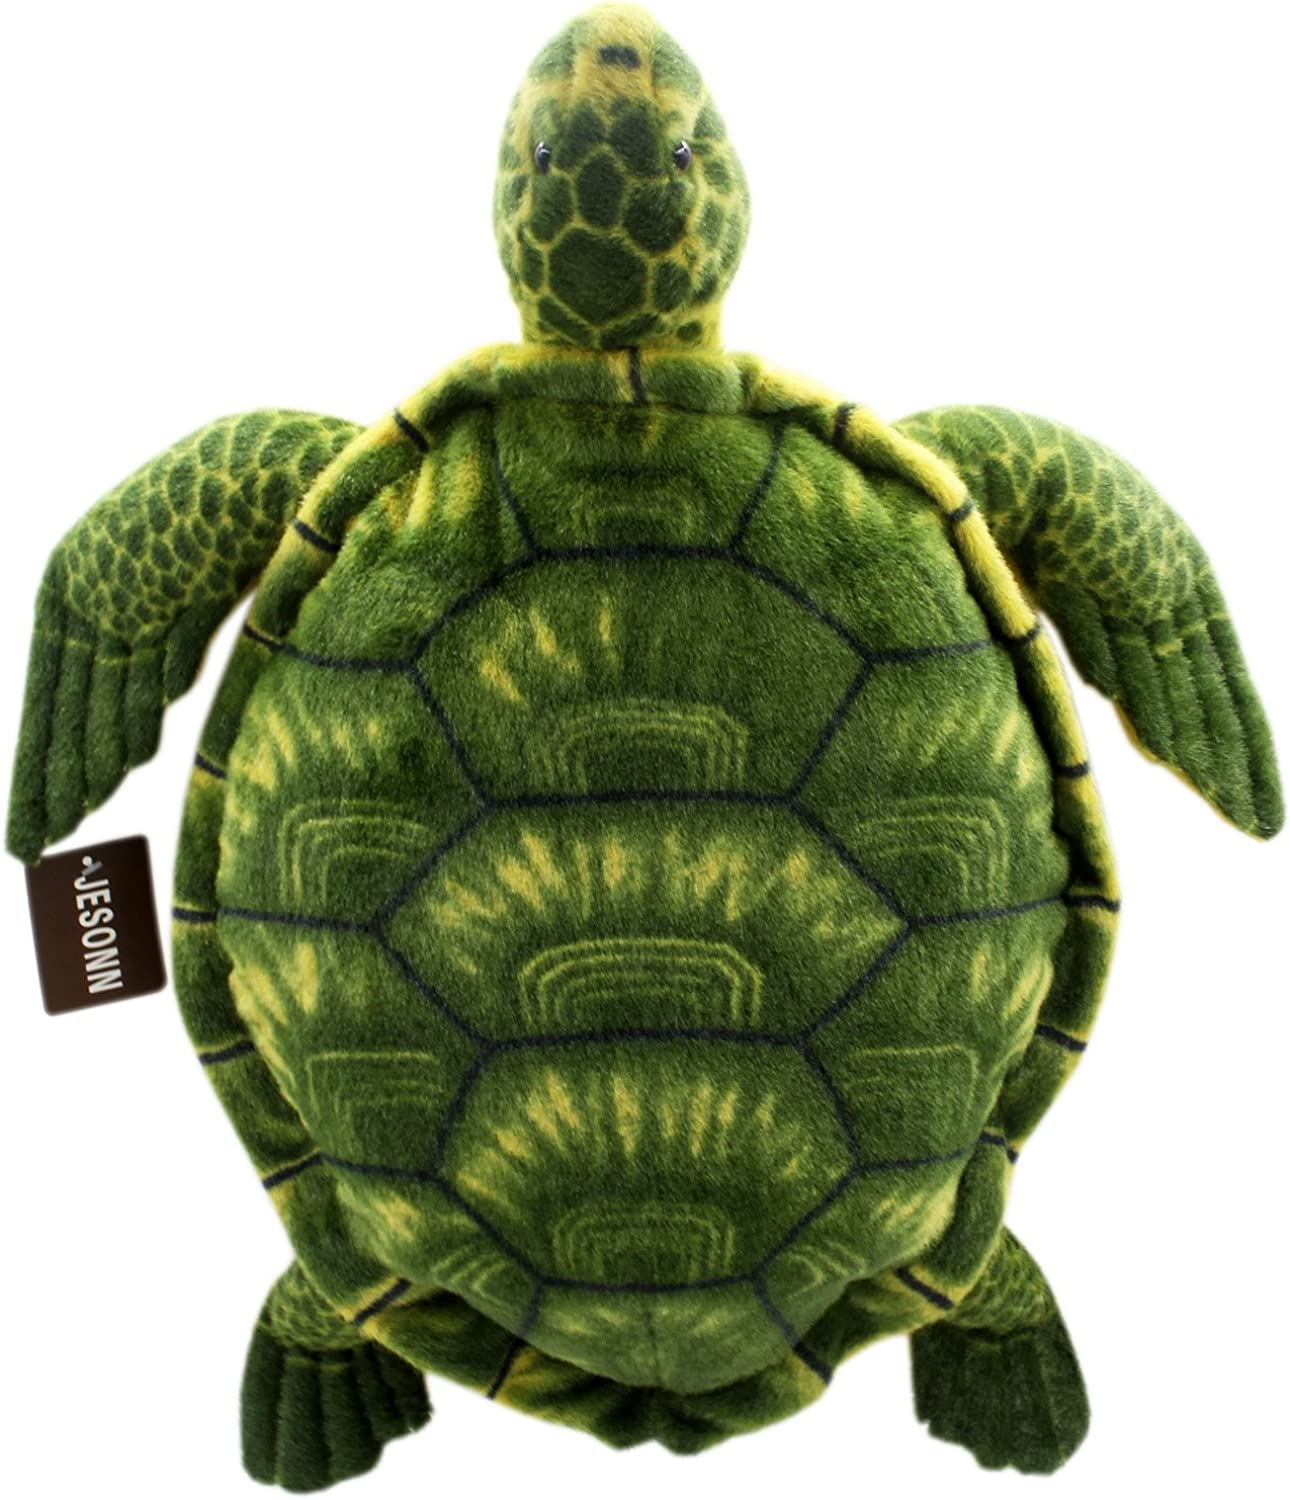 Jesonn Realistic Soft Stuffed Marine Animals Toy Turtle Plush for Kids' Pillow and Gifts,Grün,20 or 50CM,1PC